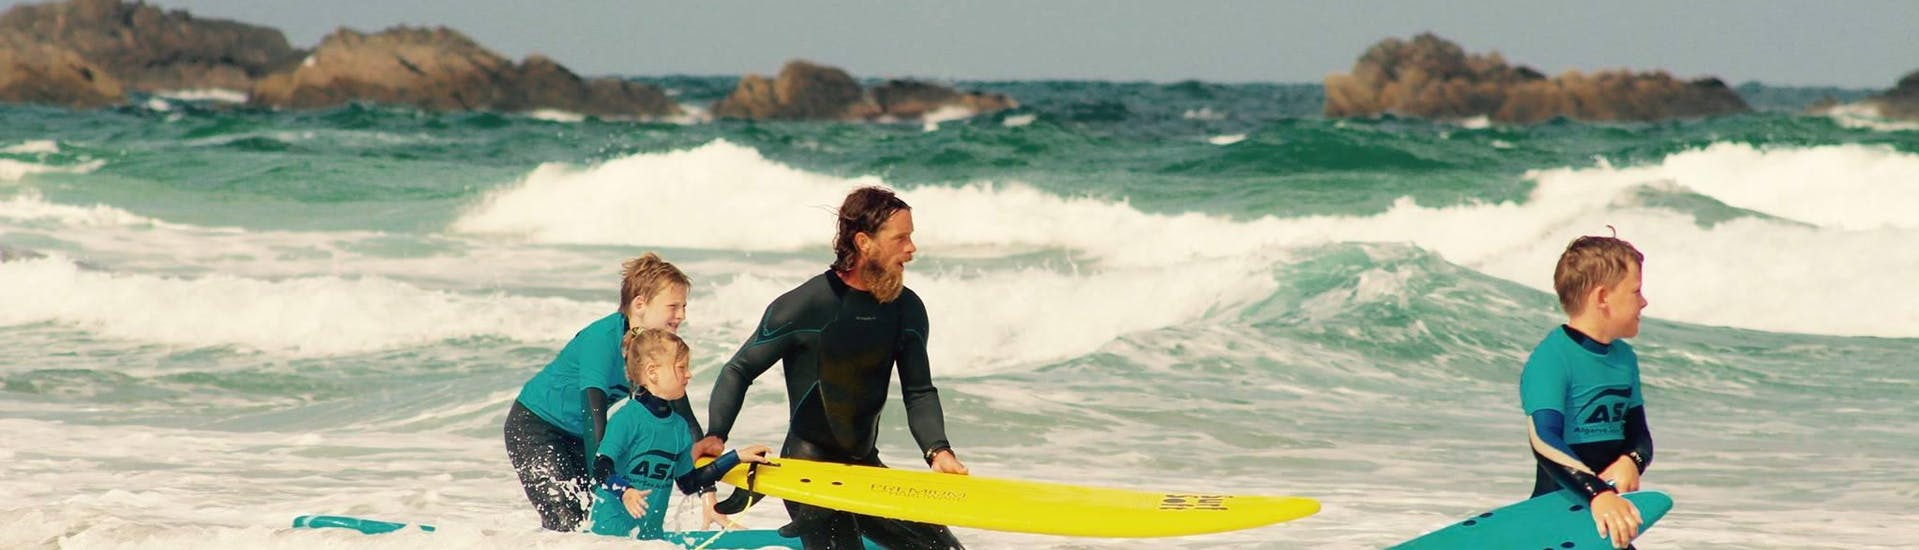 Private Surf Lesson for Families - All Levels